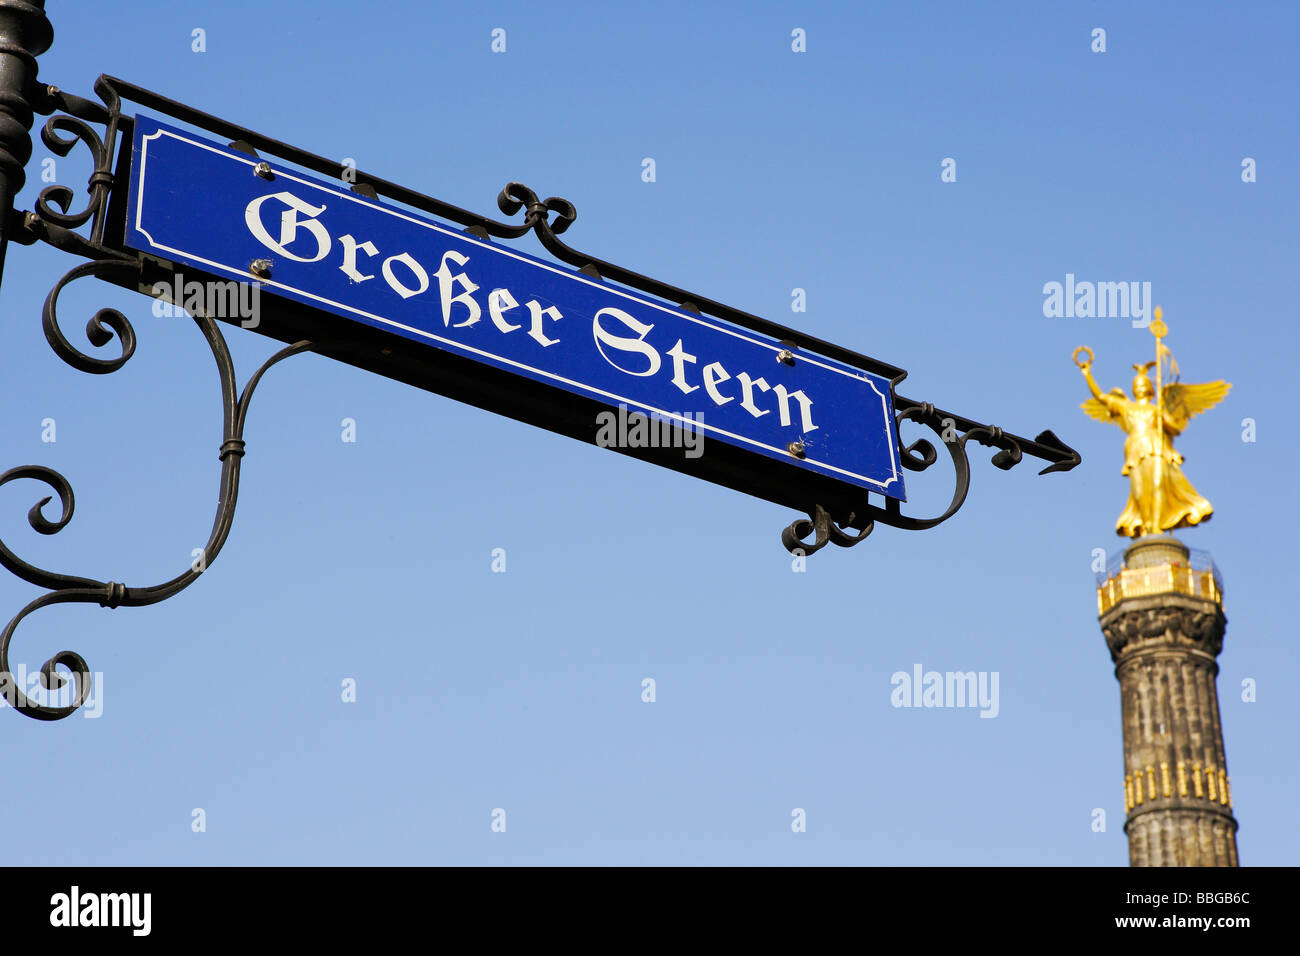 Street sign, Grosser Stern, Great Star, statue of Victoria on the Siegessaeule, Victory Column in Berlin, Germany, - Stock Image